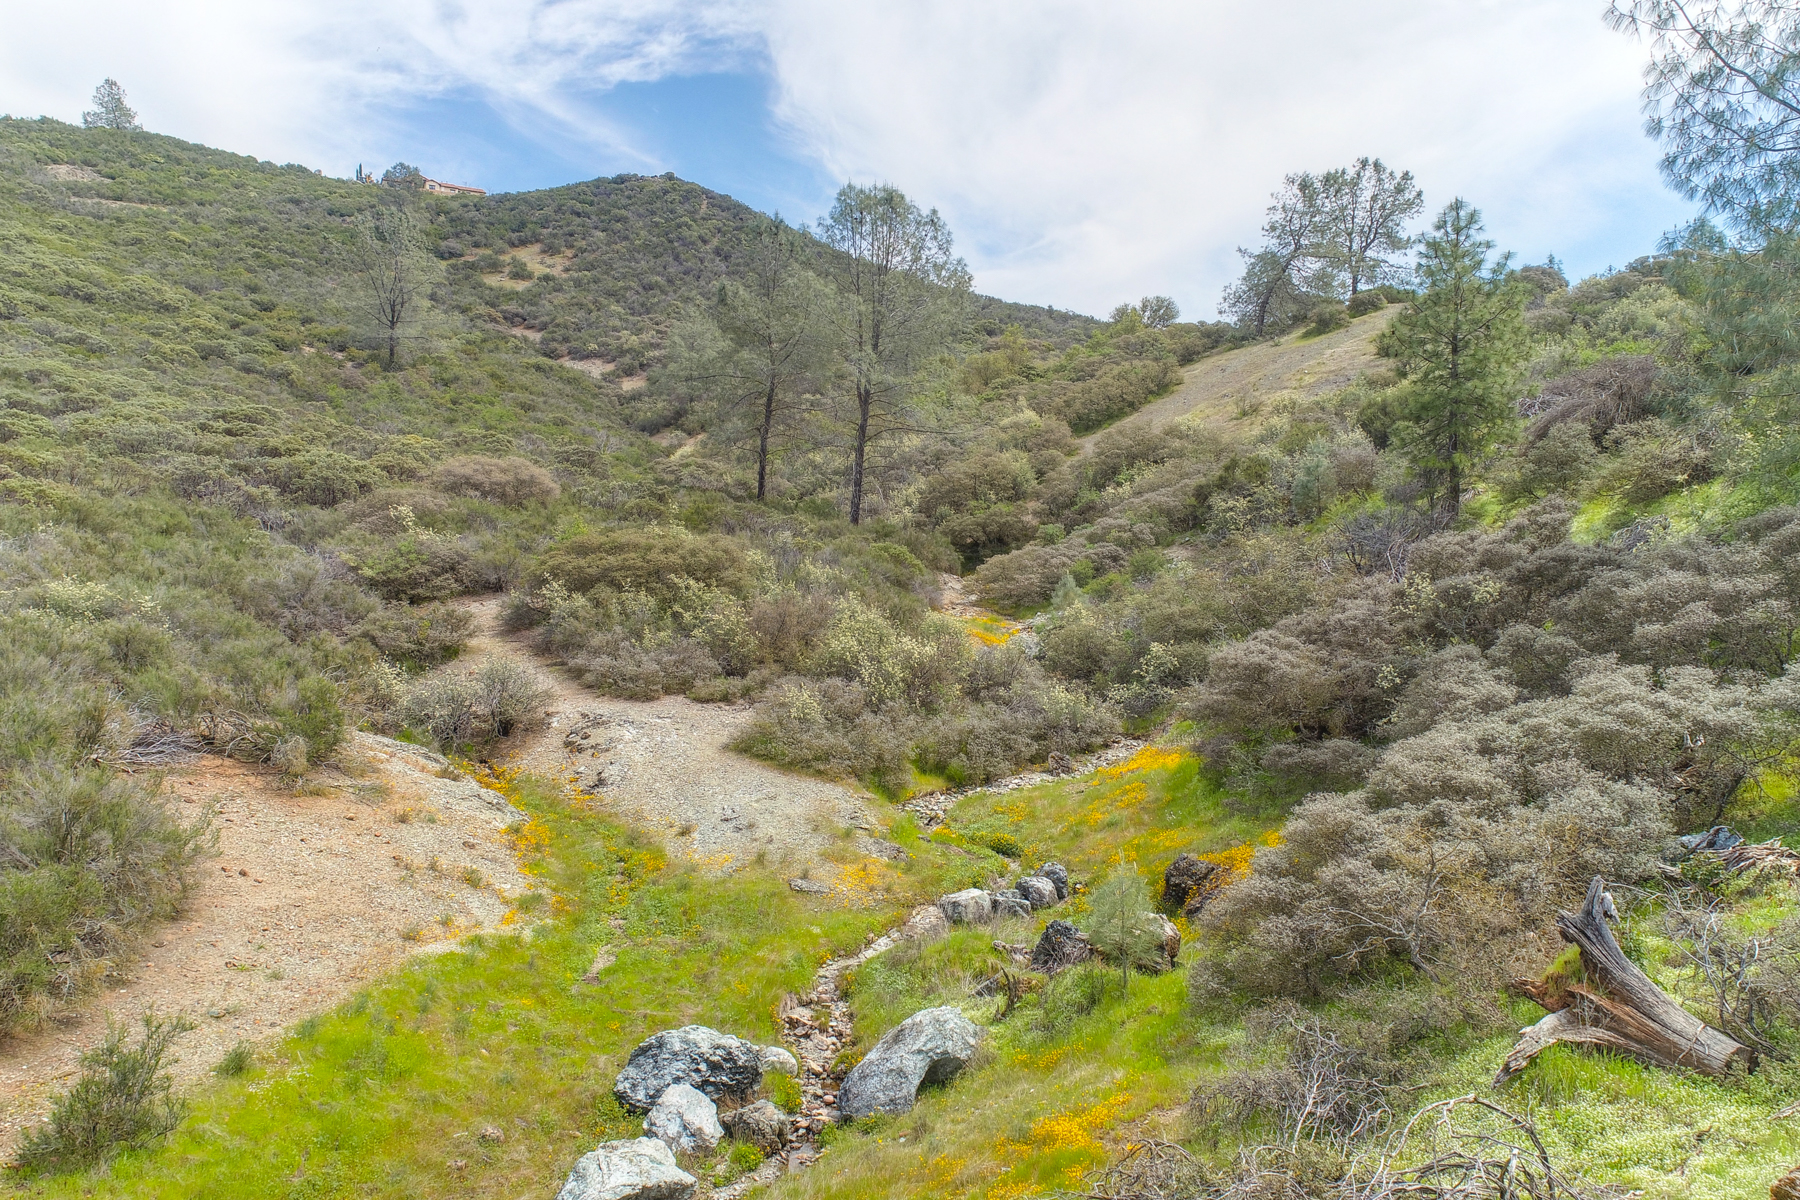 Land for Sale at Lisa Ln, Placerville, CA 95667 Lisa Ln Placerville, California 95667 United States